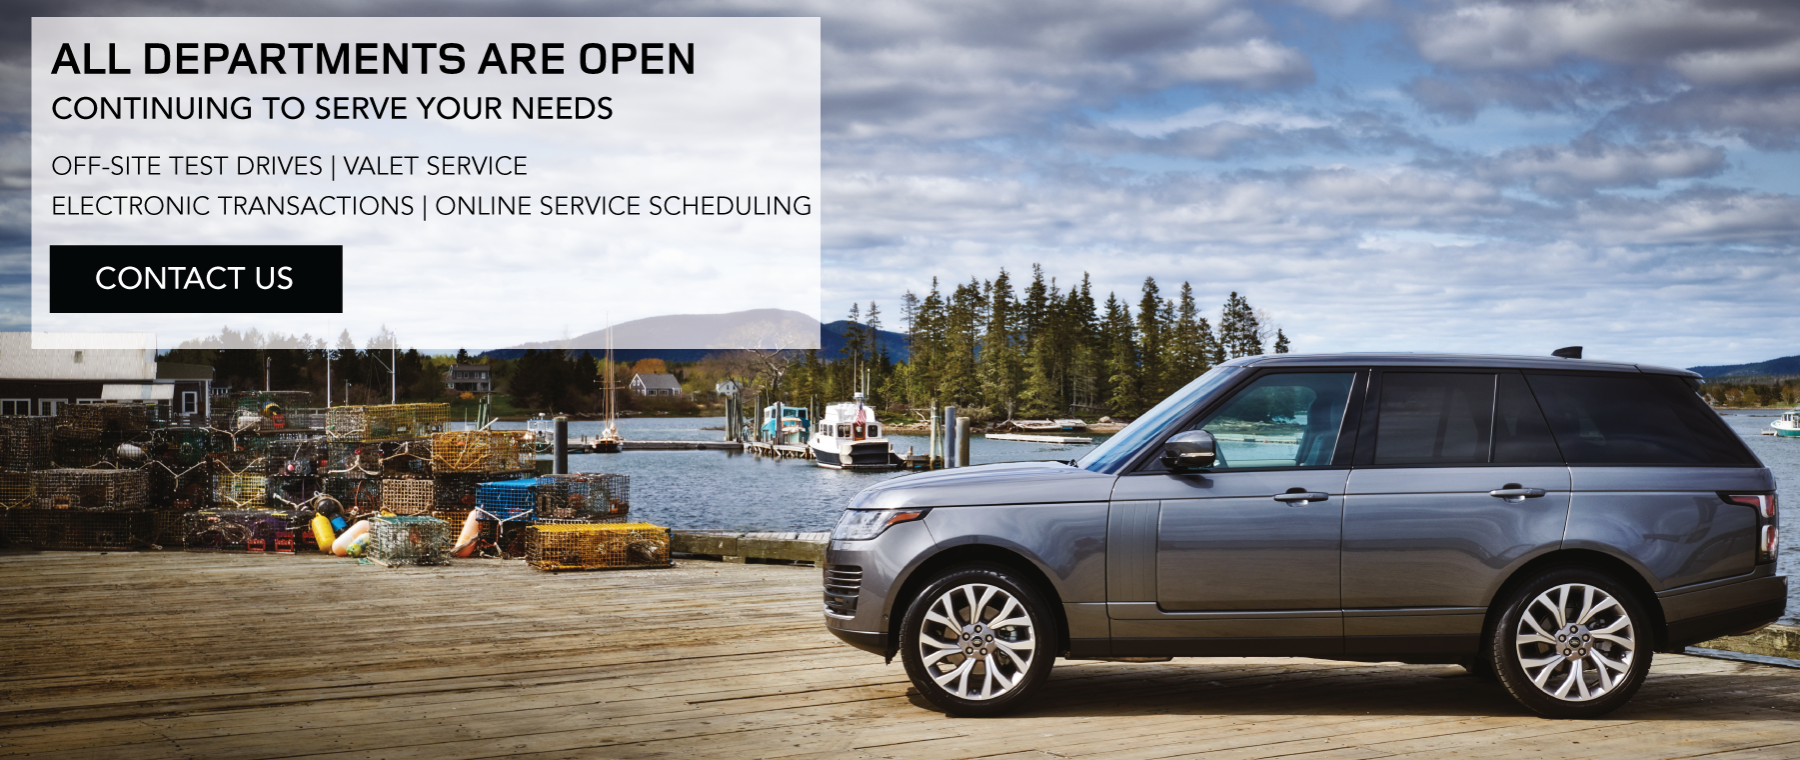 ALL DEPARTMENTS ARE OPEN. CONTINUING TO SERVE YOUR NEEDS OFF-SITE TEST DRIVES. VALET SERVICE ELECTRONIC TRANSACTIONS. ONLINE SERVICE SCHEDULING. CONTACT US. SILVER RANGE ROVER PARKED ON DOCK NEAR LAKE.